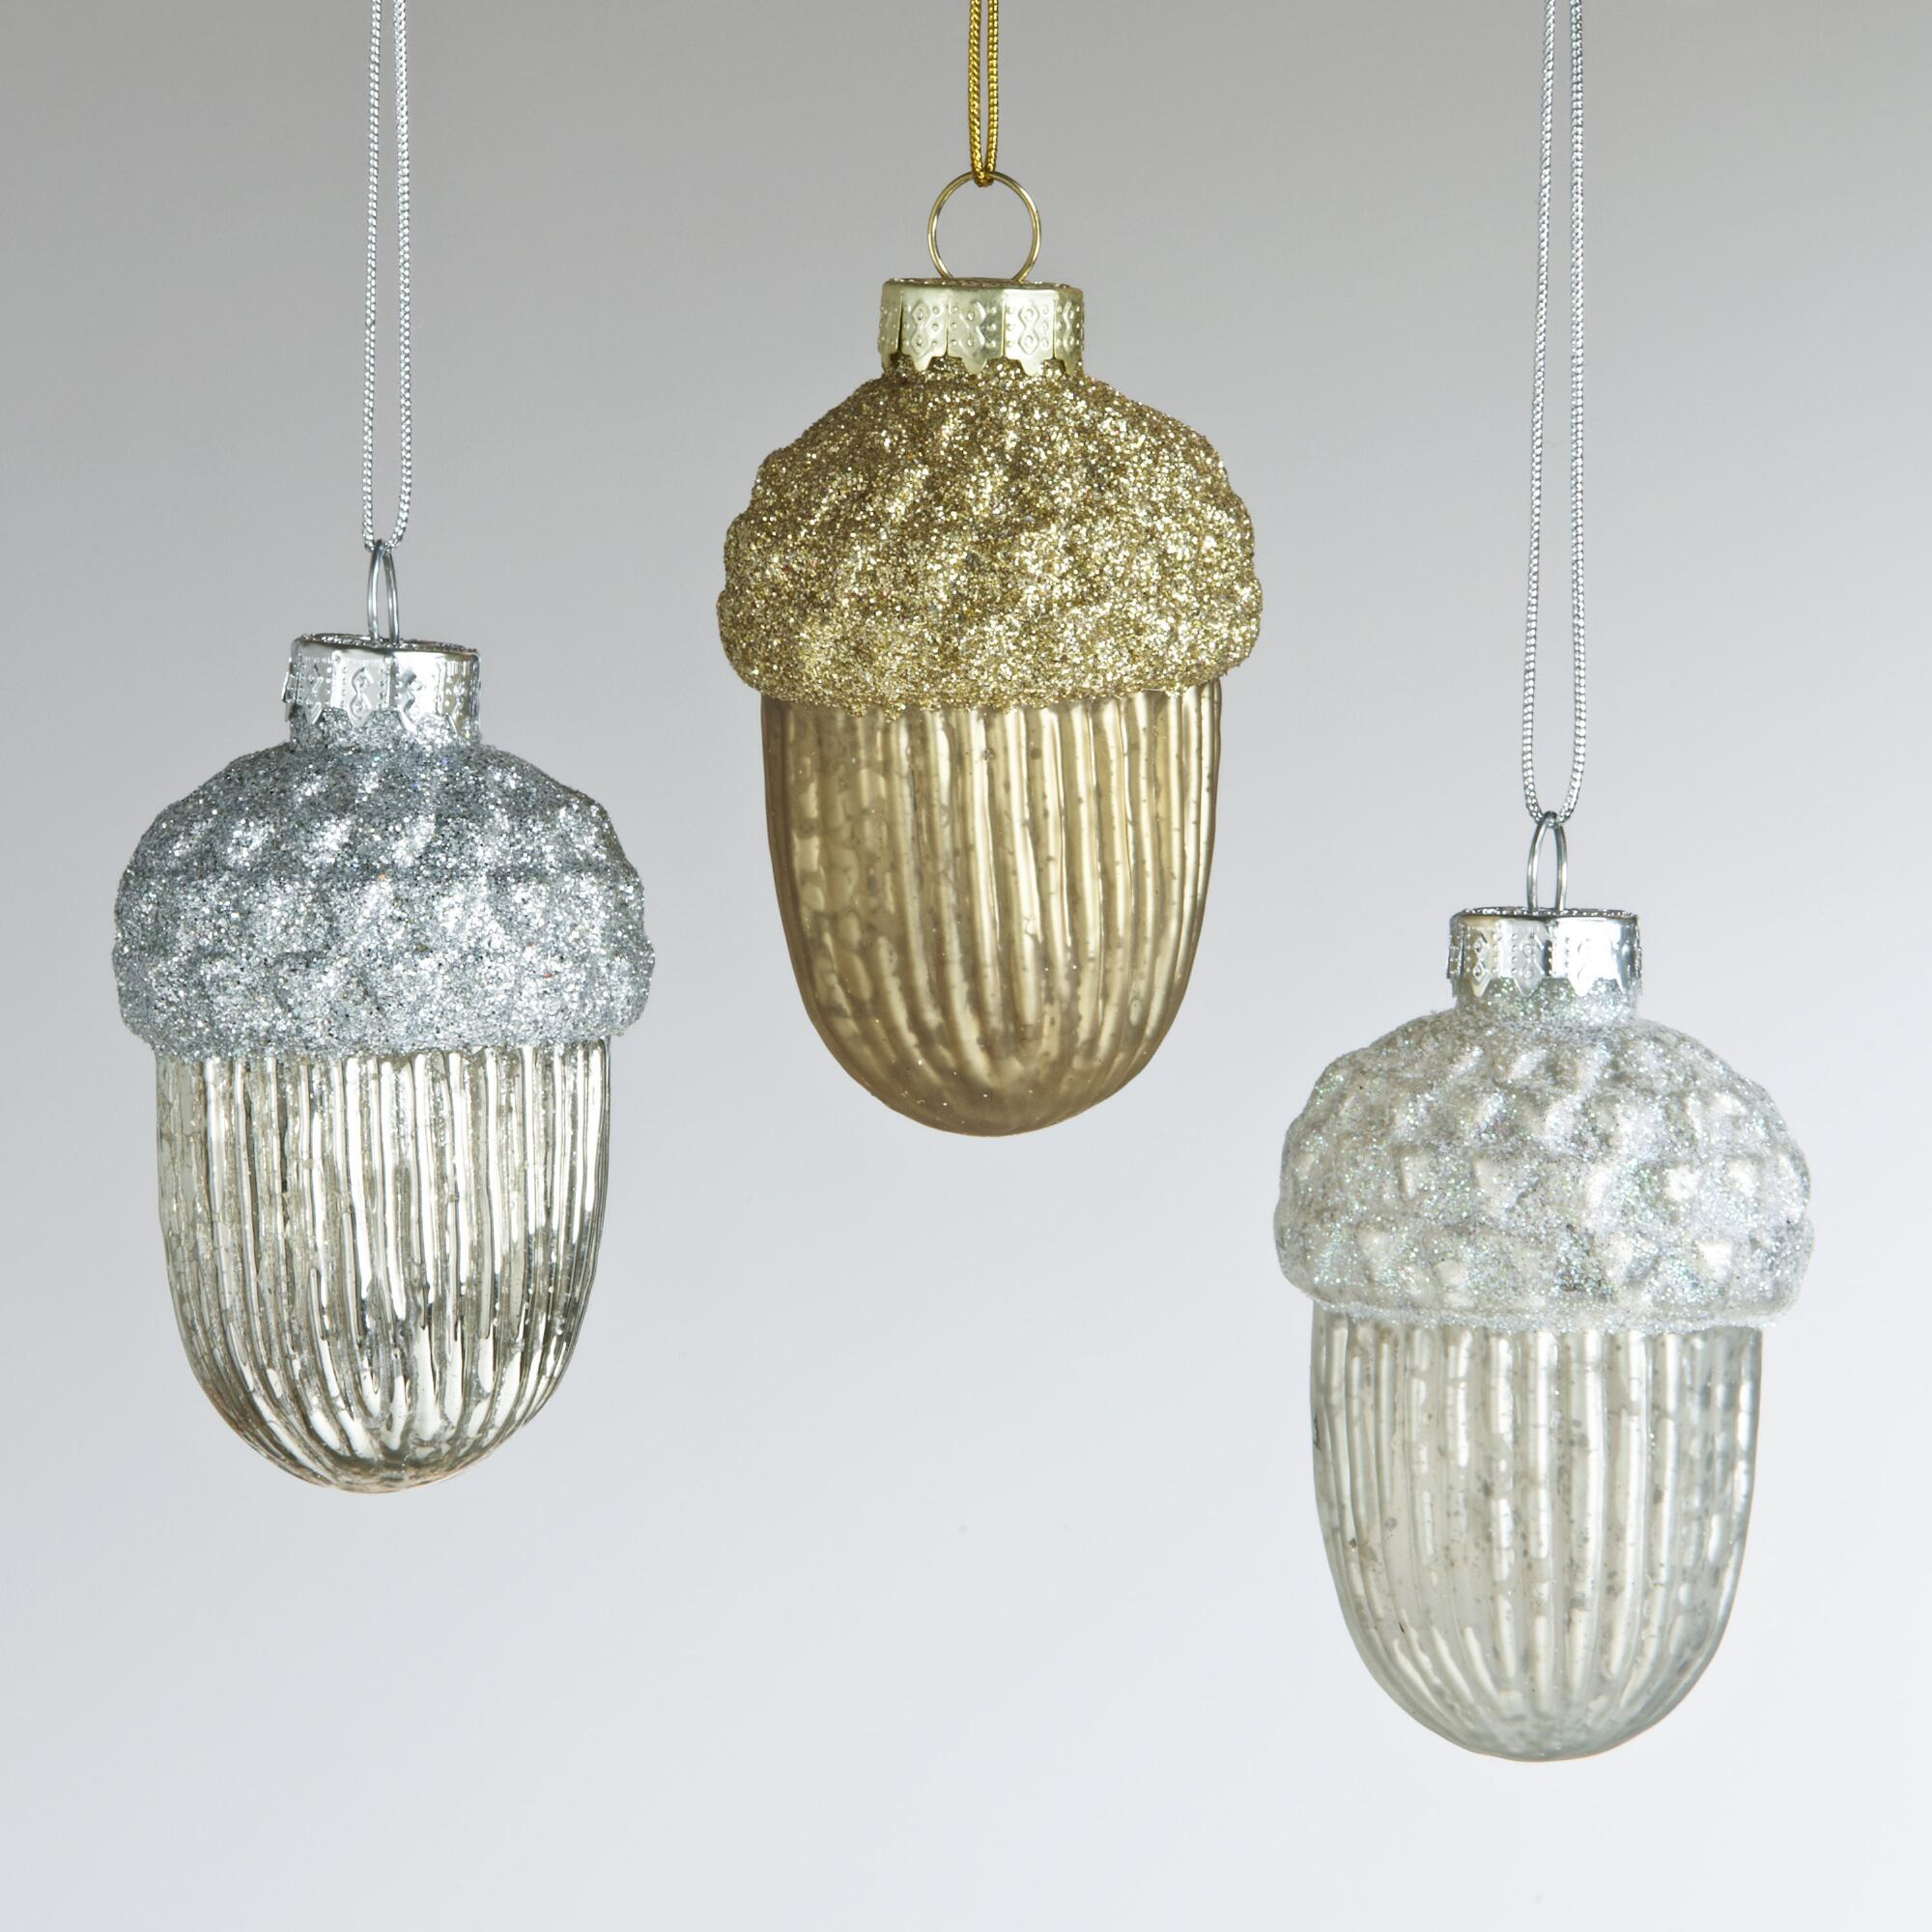 mercury glass acorn ornaments set of 3 world market